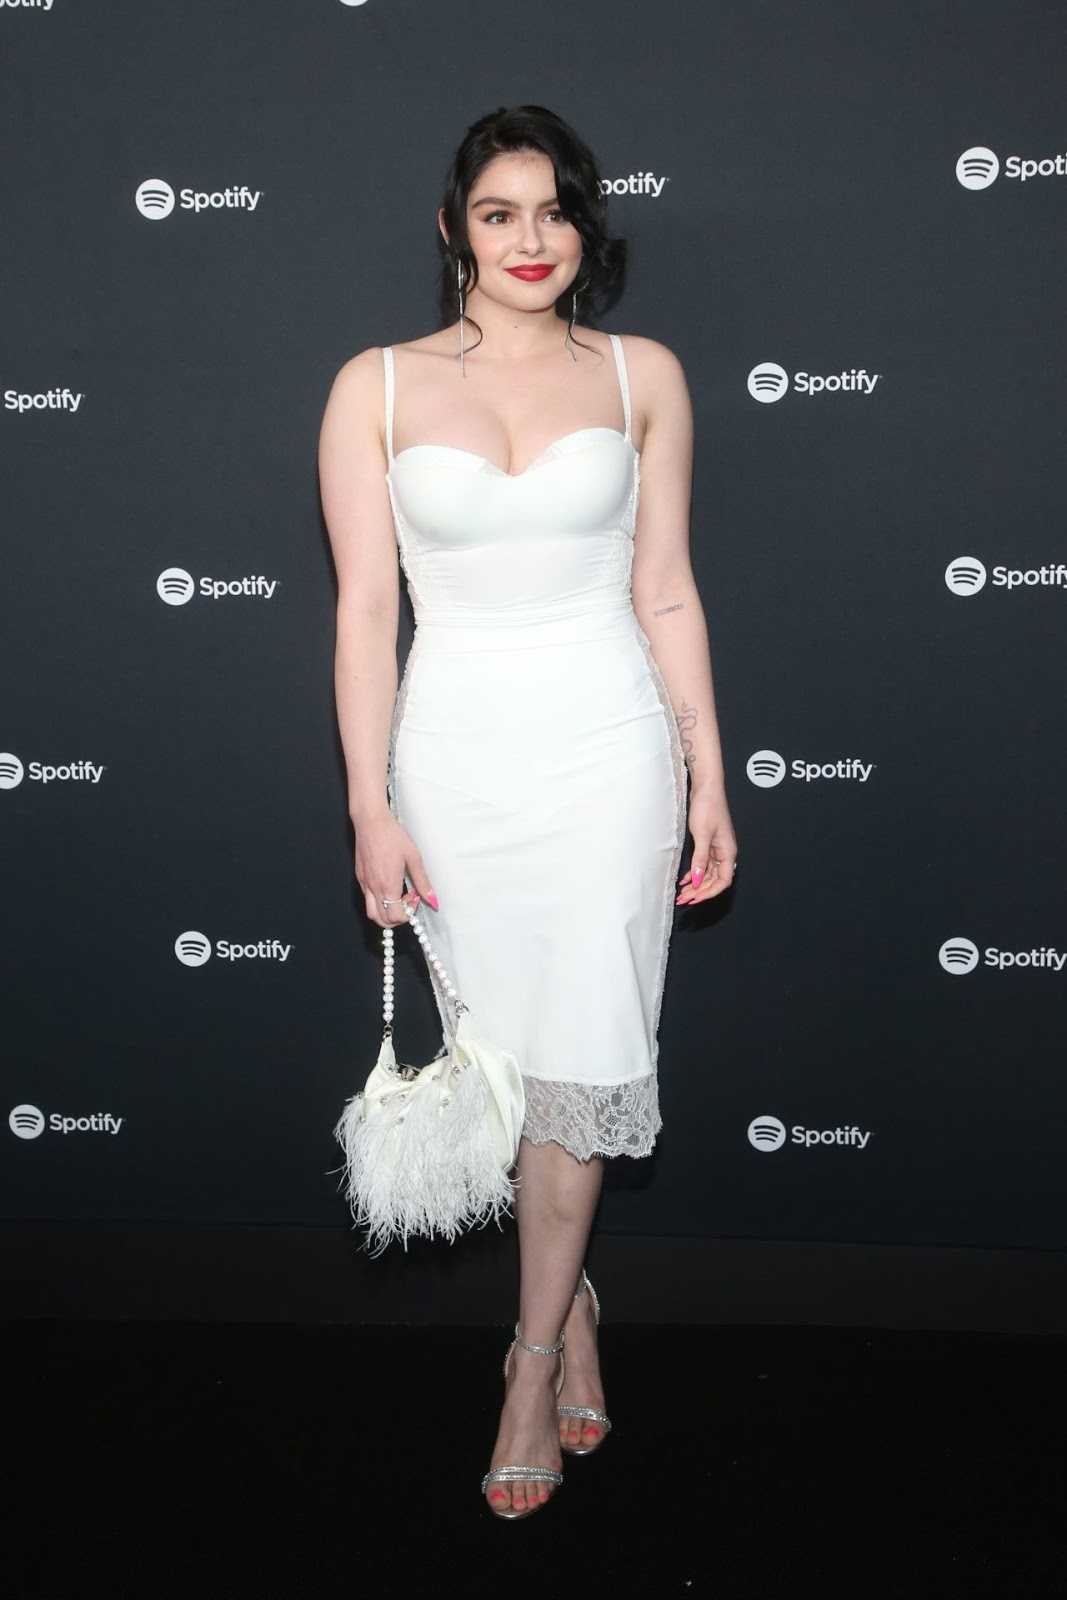 Ariel Winter, 21, turns heads in low-cut white dress at Spotify party in LA as her sitcom Modern Family ends after 11 seasons